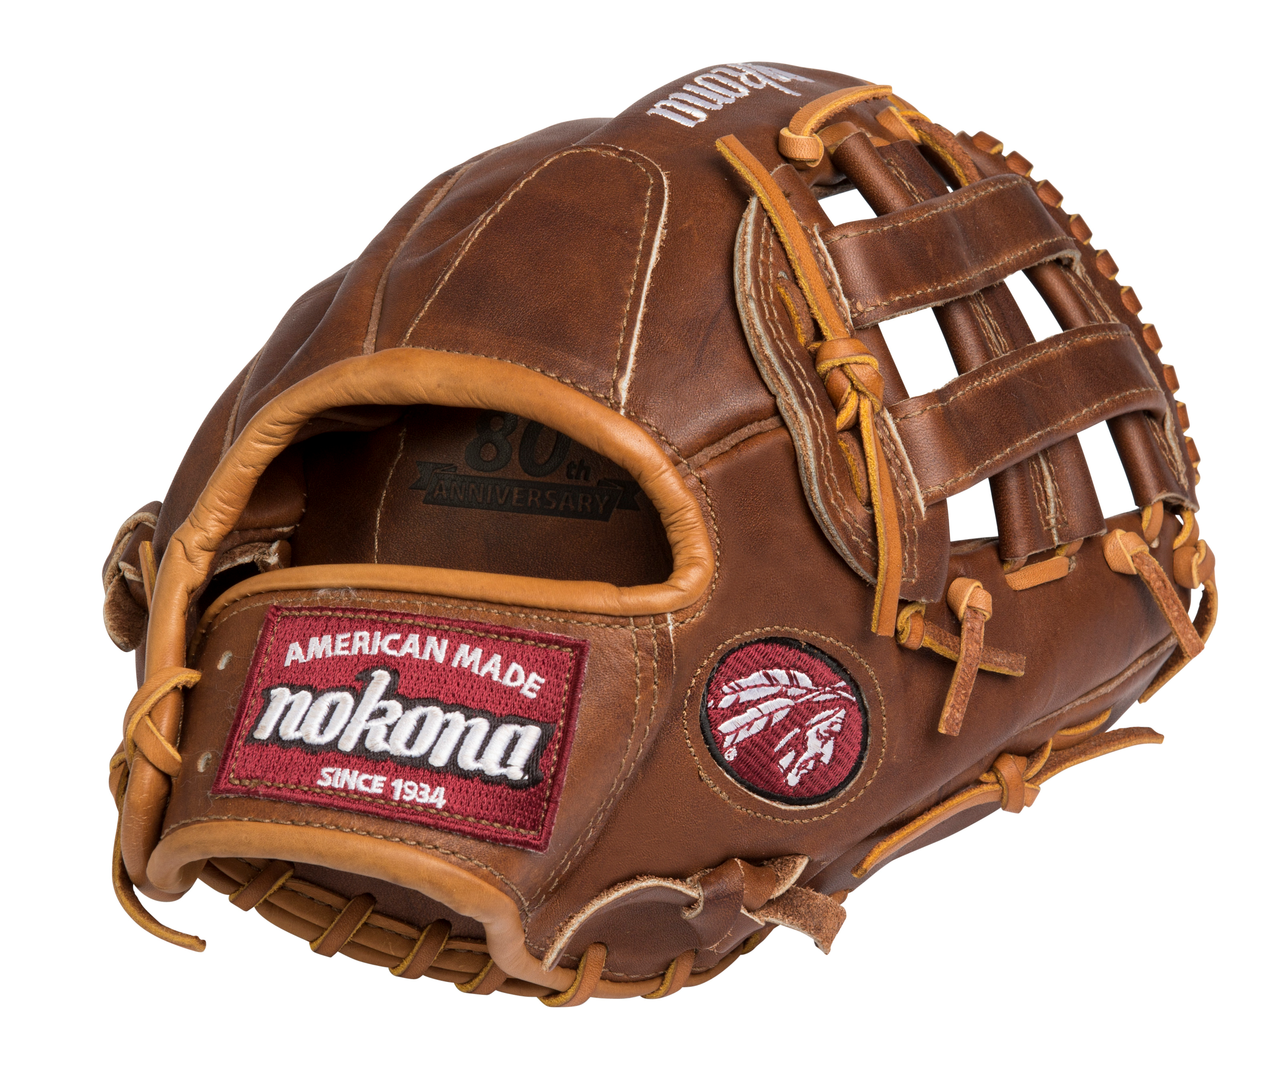 Nokona WB-1200H Walnut Baseball Glove 12 inch (Right Hand Throw) : Nokona has built its reputation on its legendary Walnut Leather. Now made with our proprietary Walnut HHH Leather which provides greater stiffness and stability. Once this glove is worked in, this glove is soft and supple, yet remains sturdy - a true, classic Nokona.